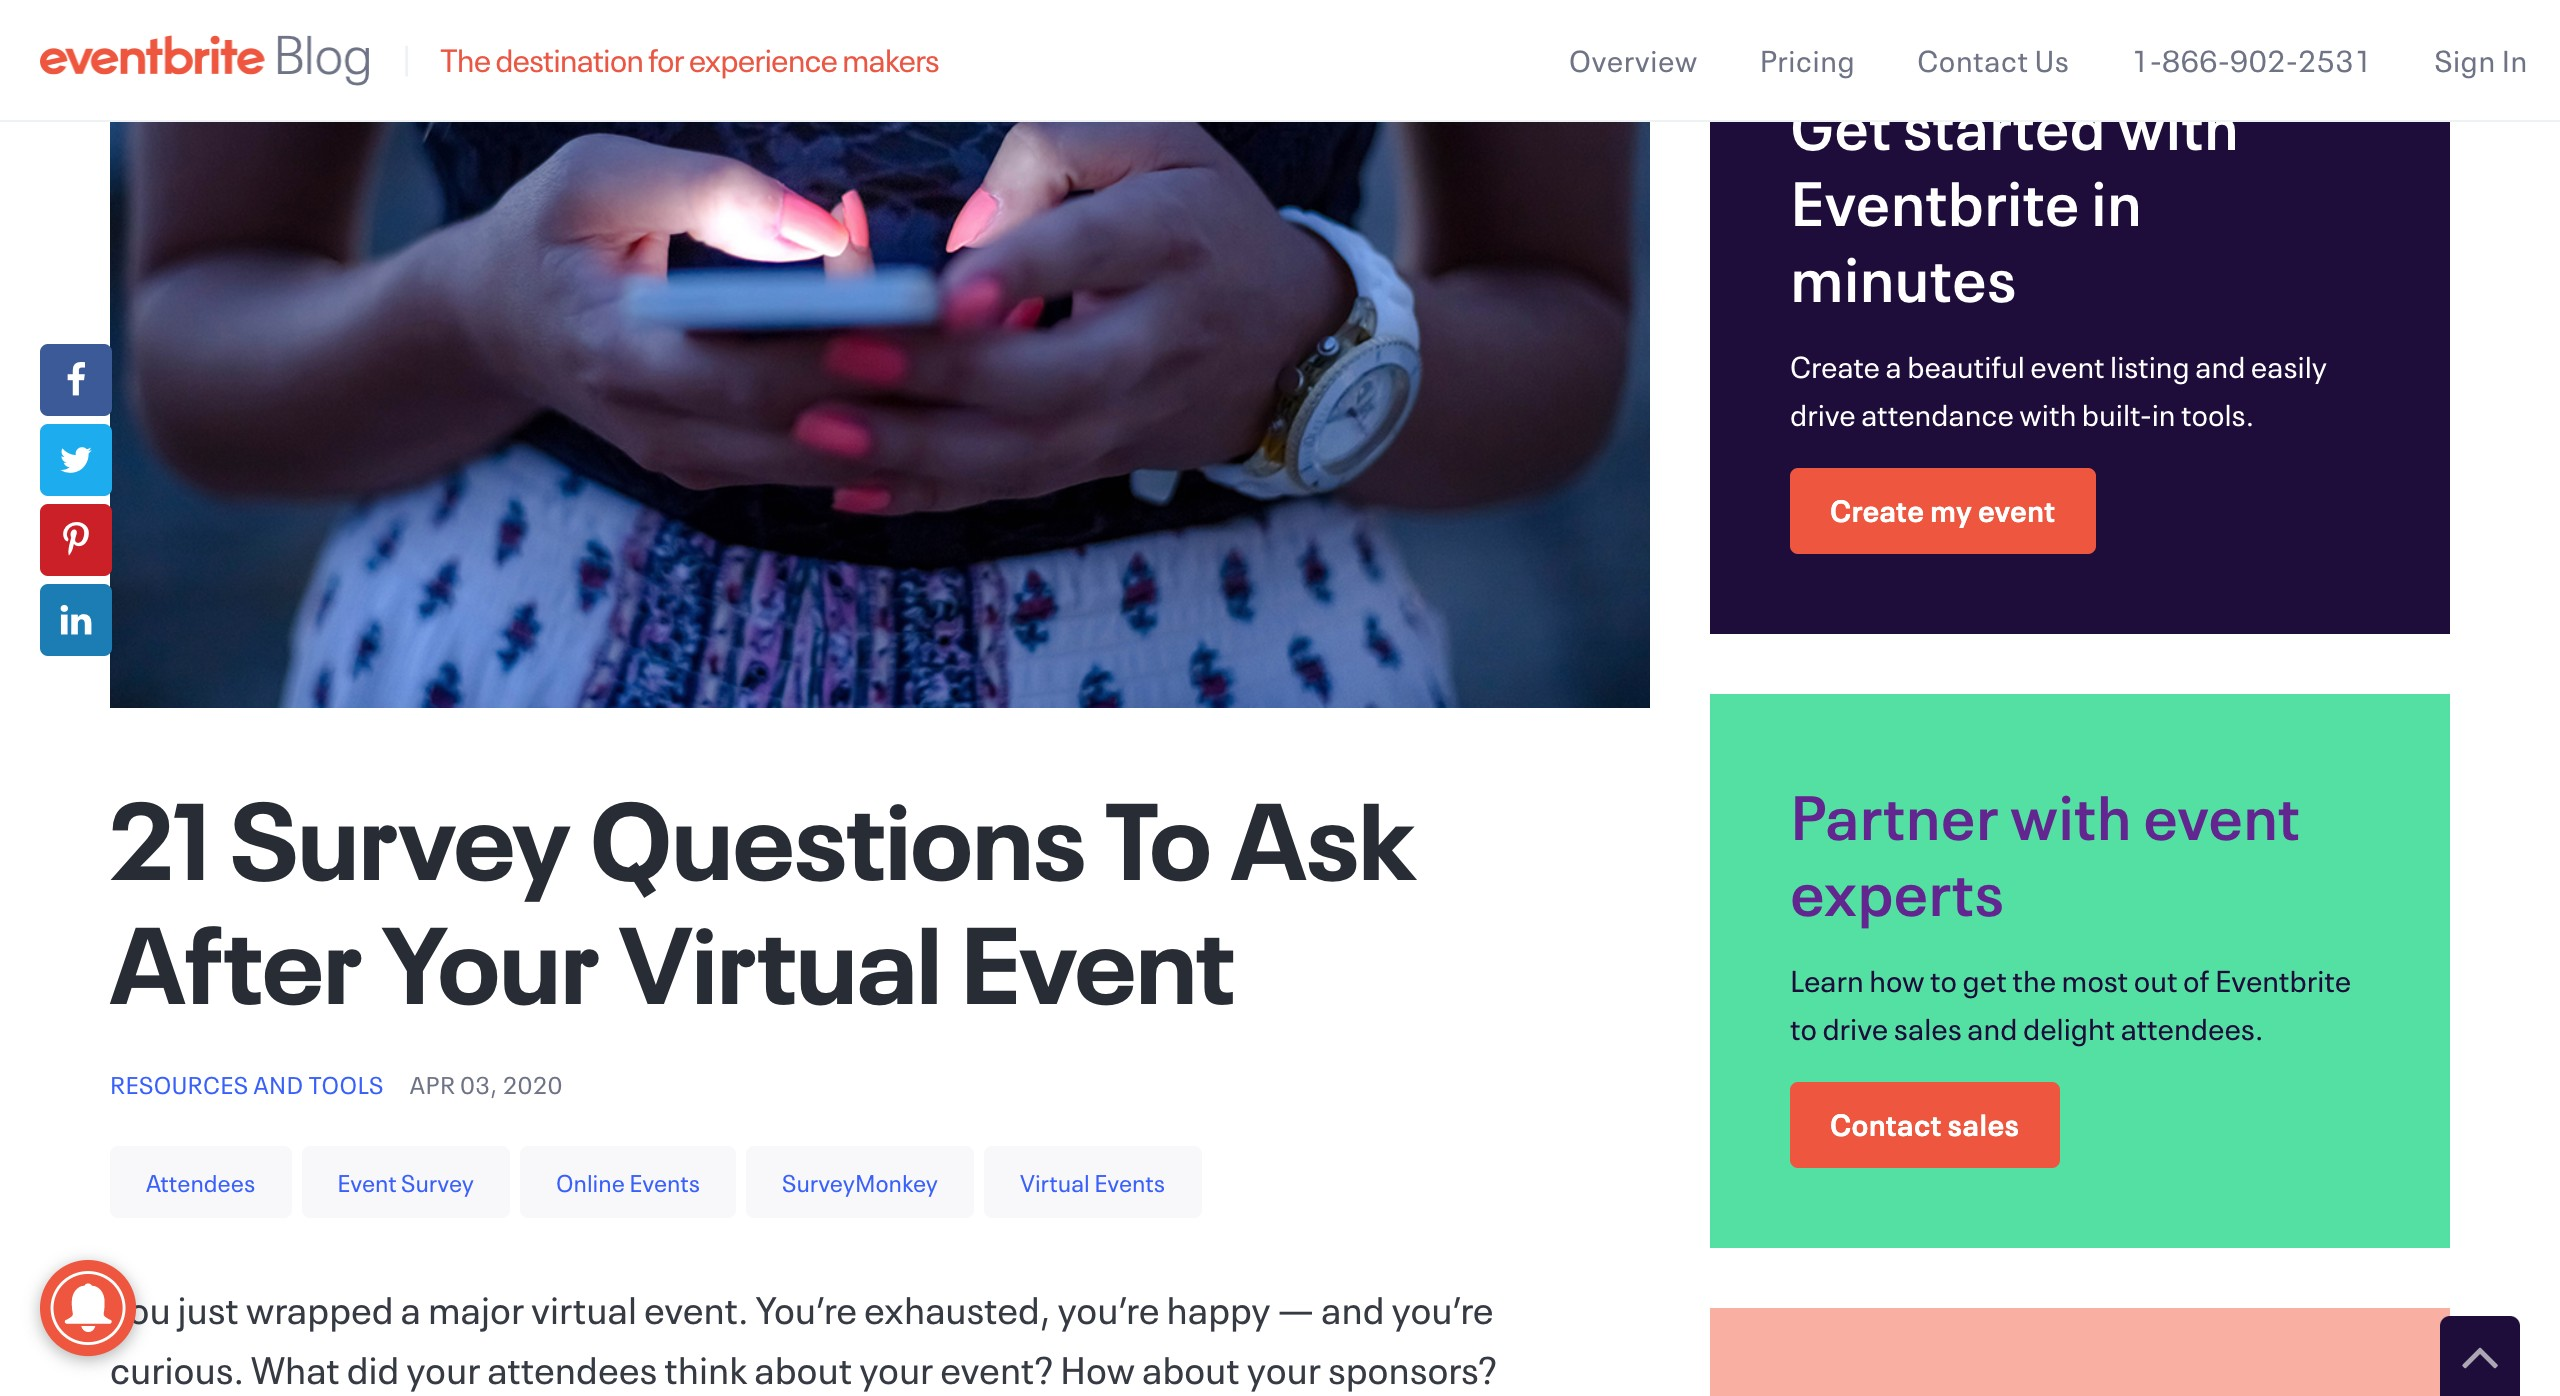 21 Survey Questions To Ask After Your Virtual Event